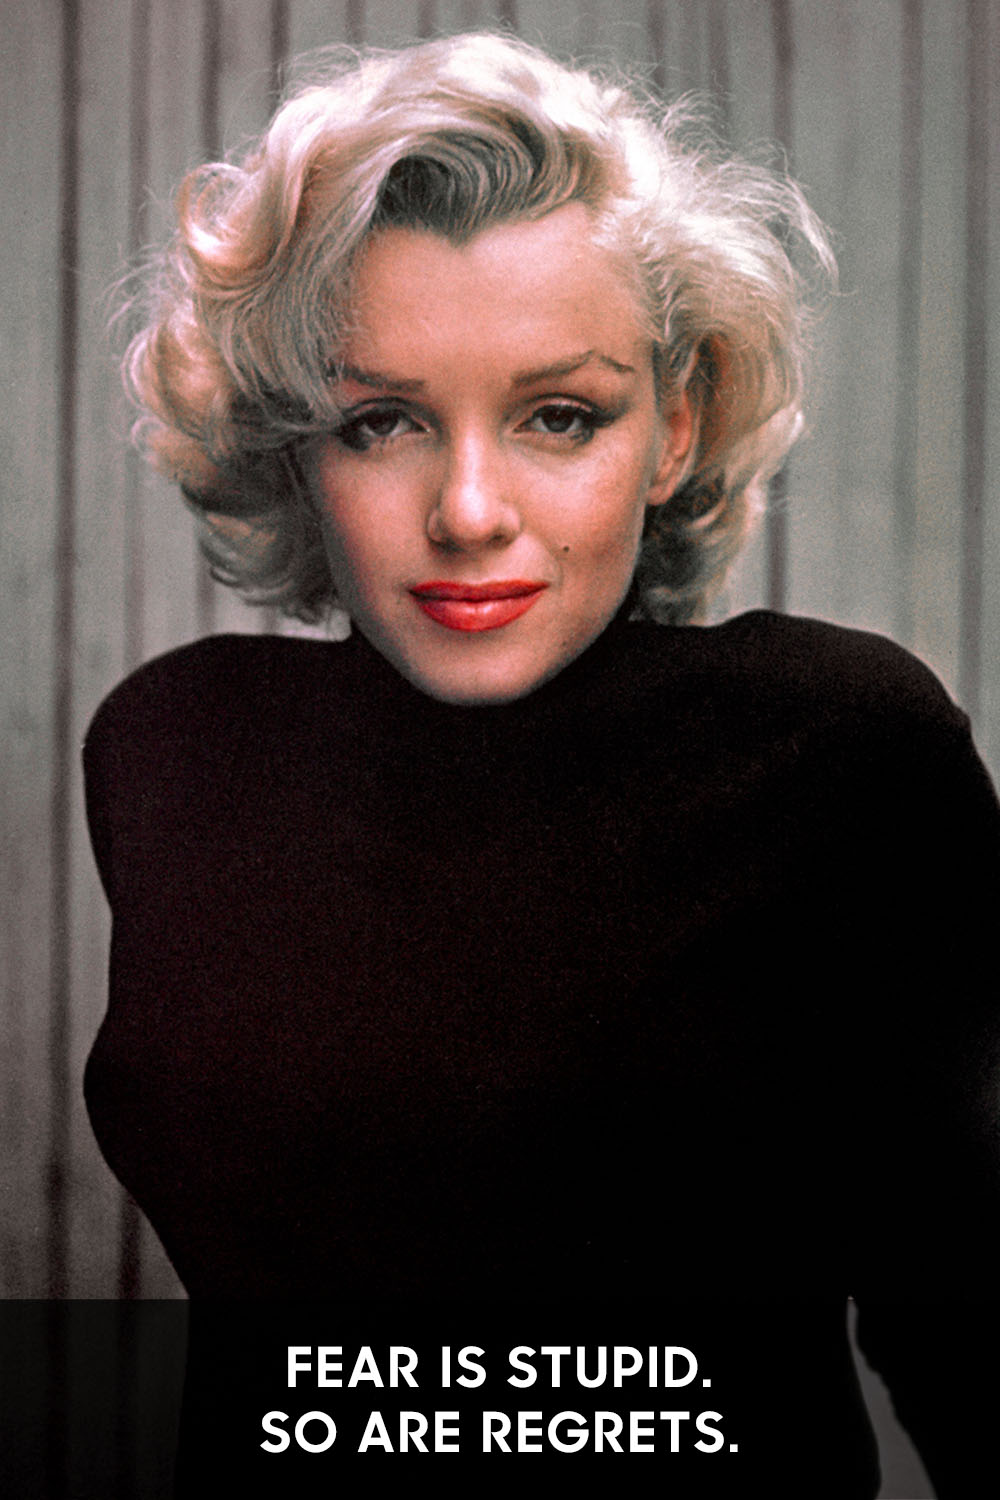 Famous Marilyn Monroe Quotes About Love: 20 Best Marilyn Monroe Quotes On Love And Life